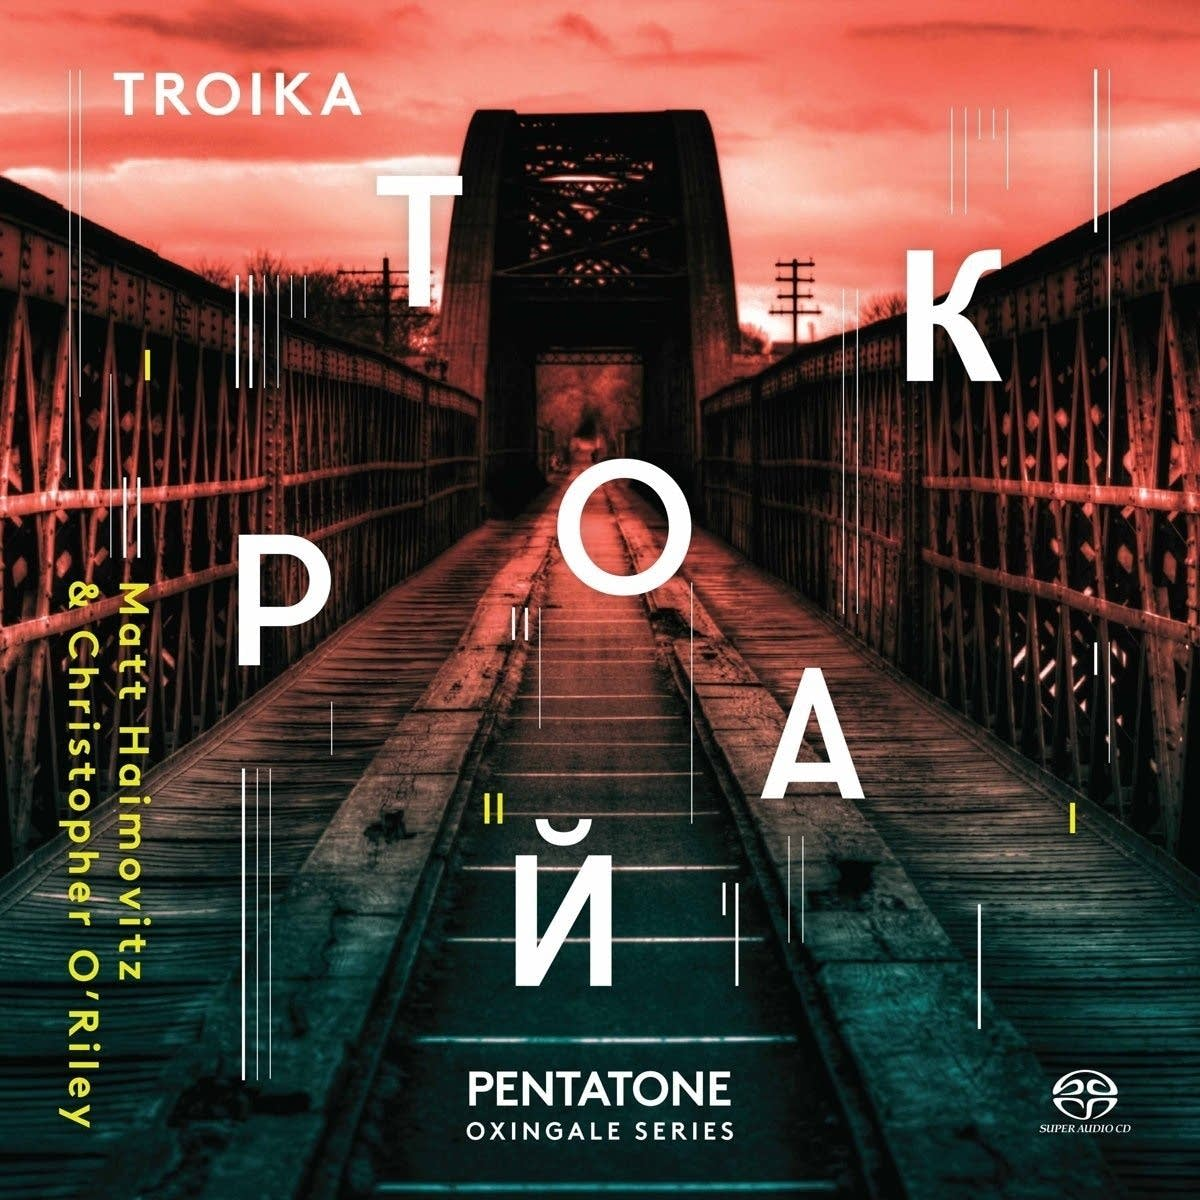 Matt Haimovitz and Christopher O'Riley, 'Troika'